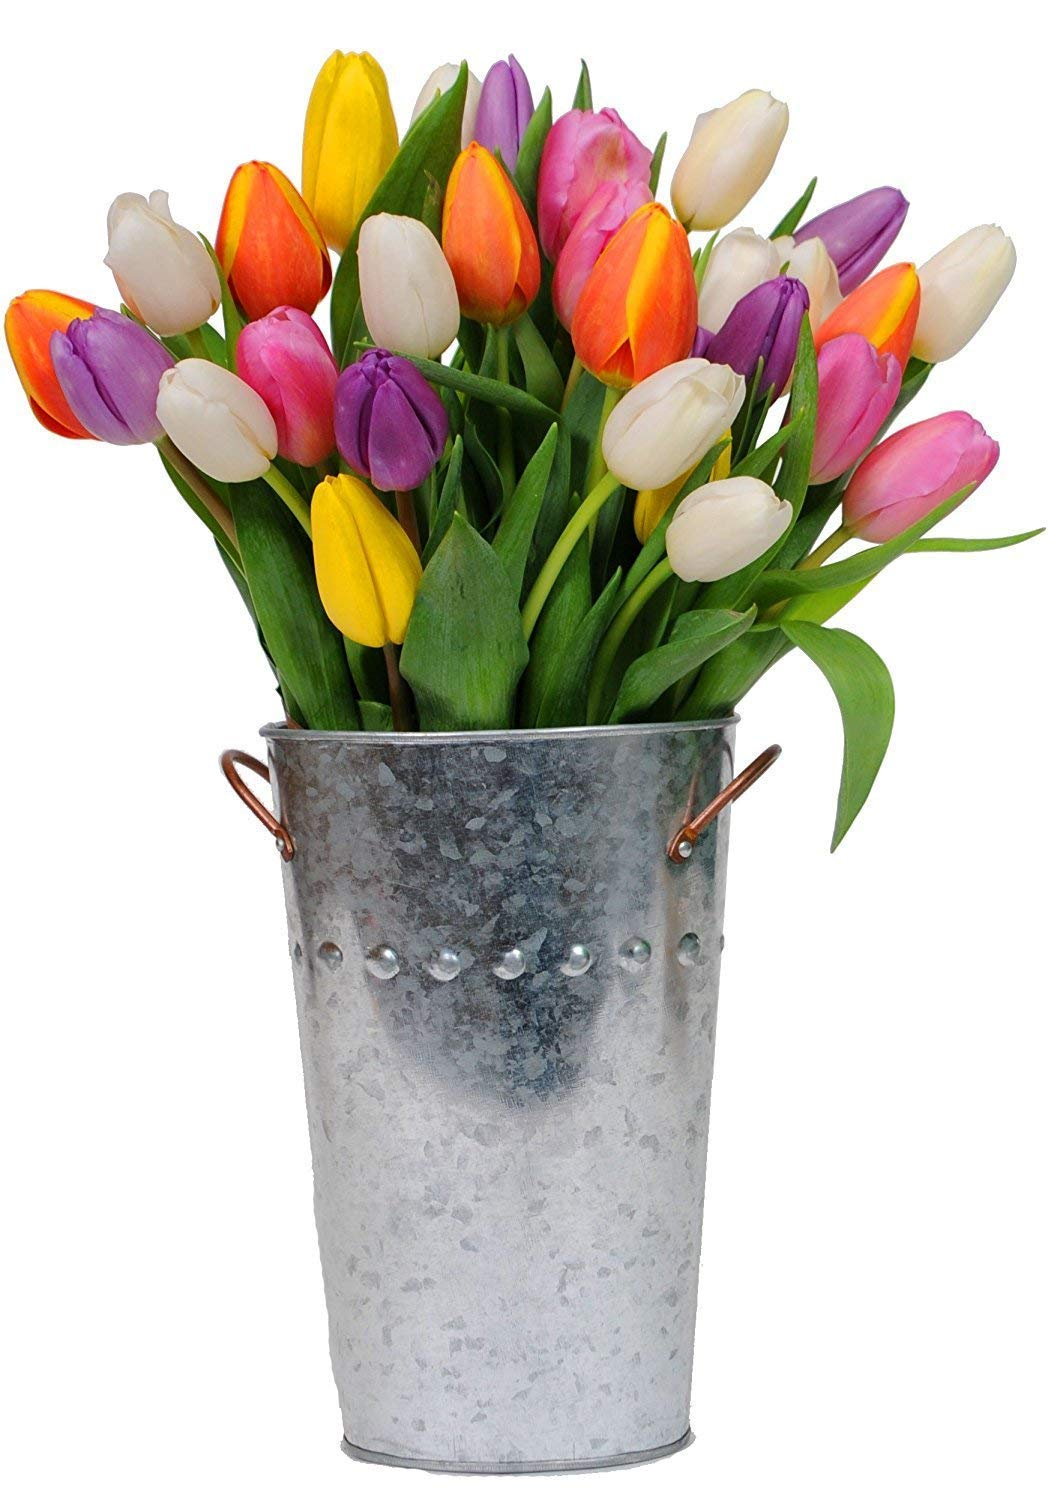 Stargazer Barn - Firework Bouquet - 30 Assorted Color Tulips with French Bucket Style Vase - Farm Fresh by Stargazer Barn